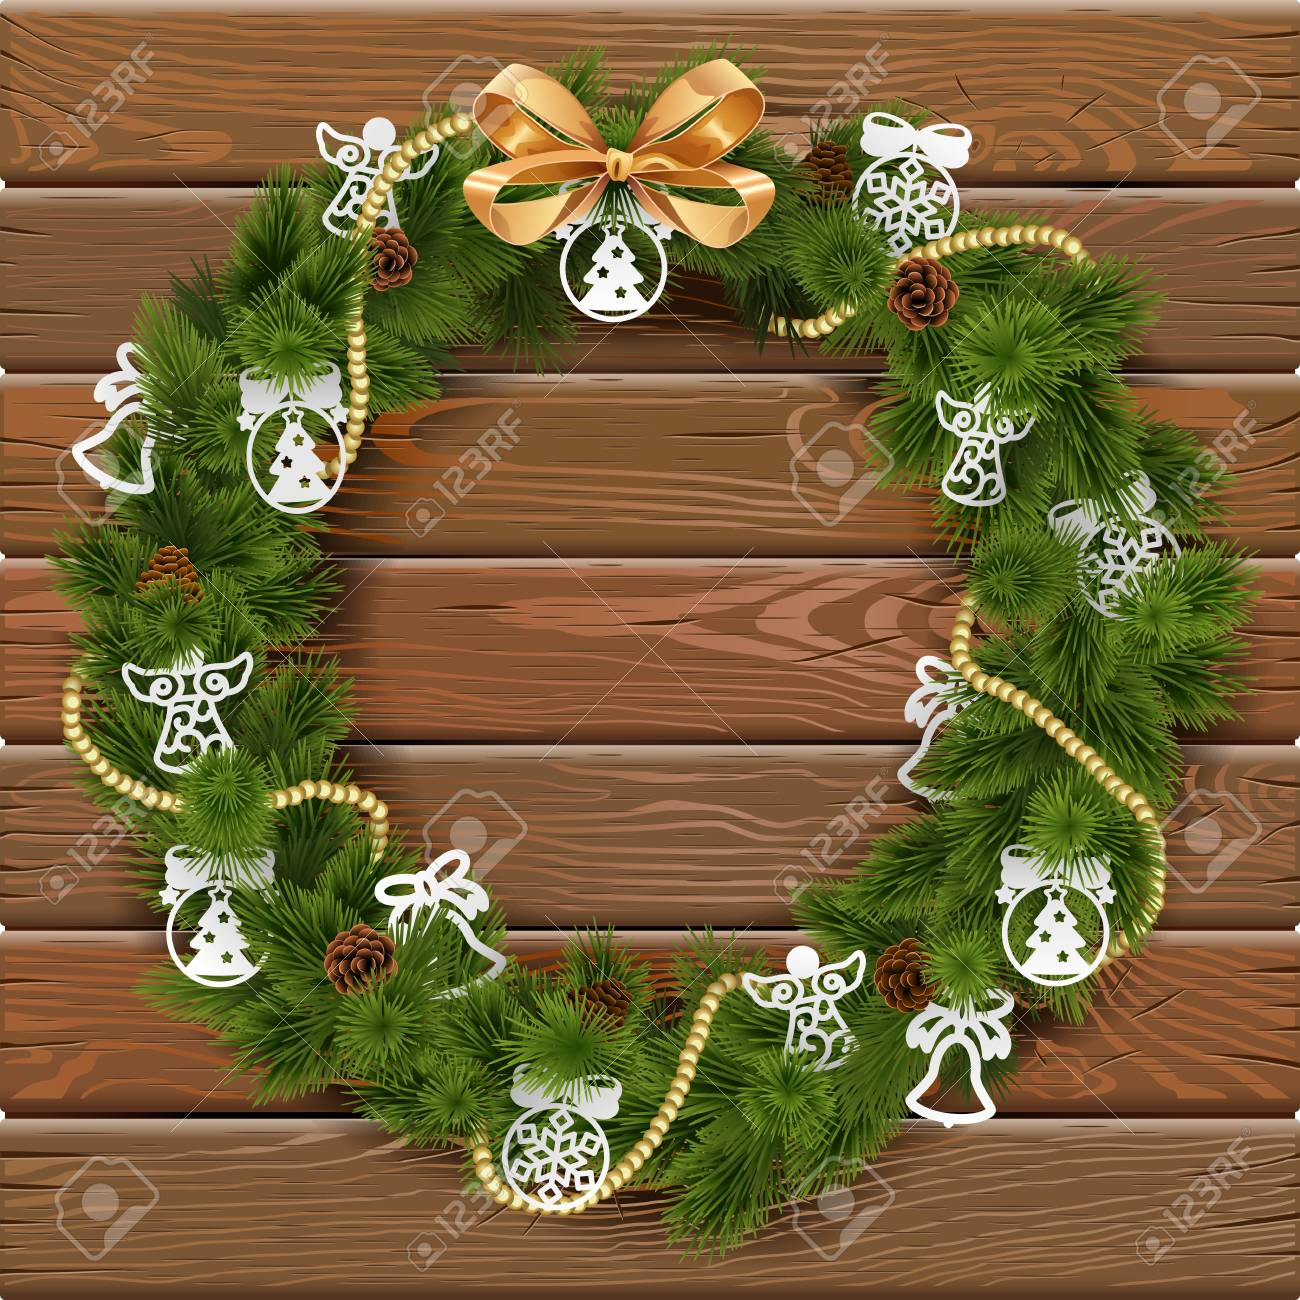 Paper Christmas Wreath Designs.Christmas Wreath On Wooden Board With Paper Decorations And Golden